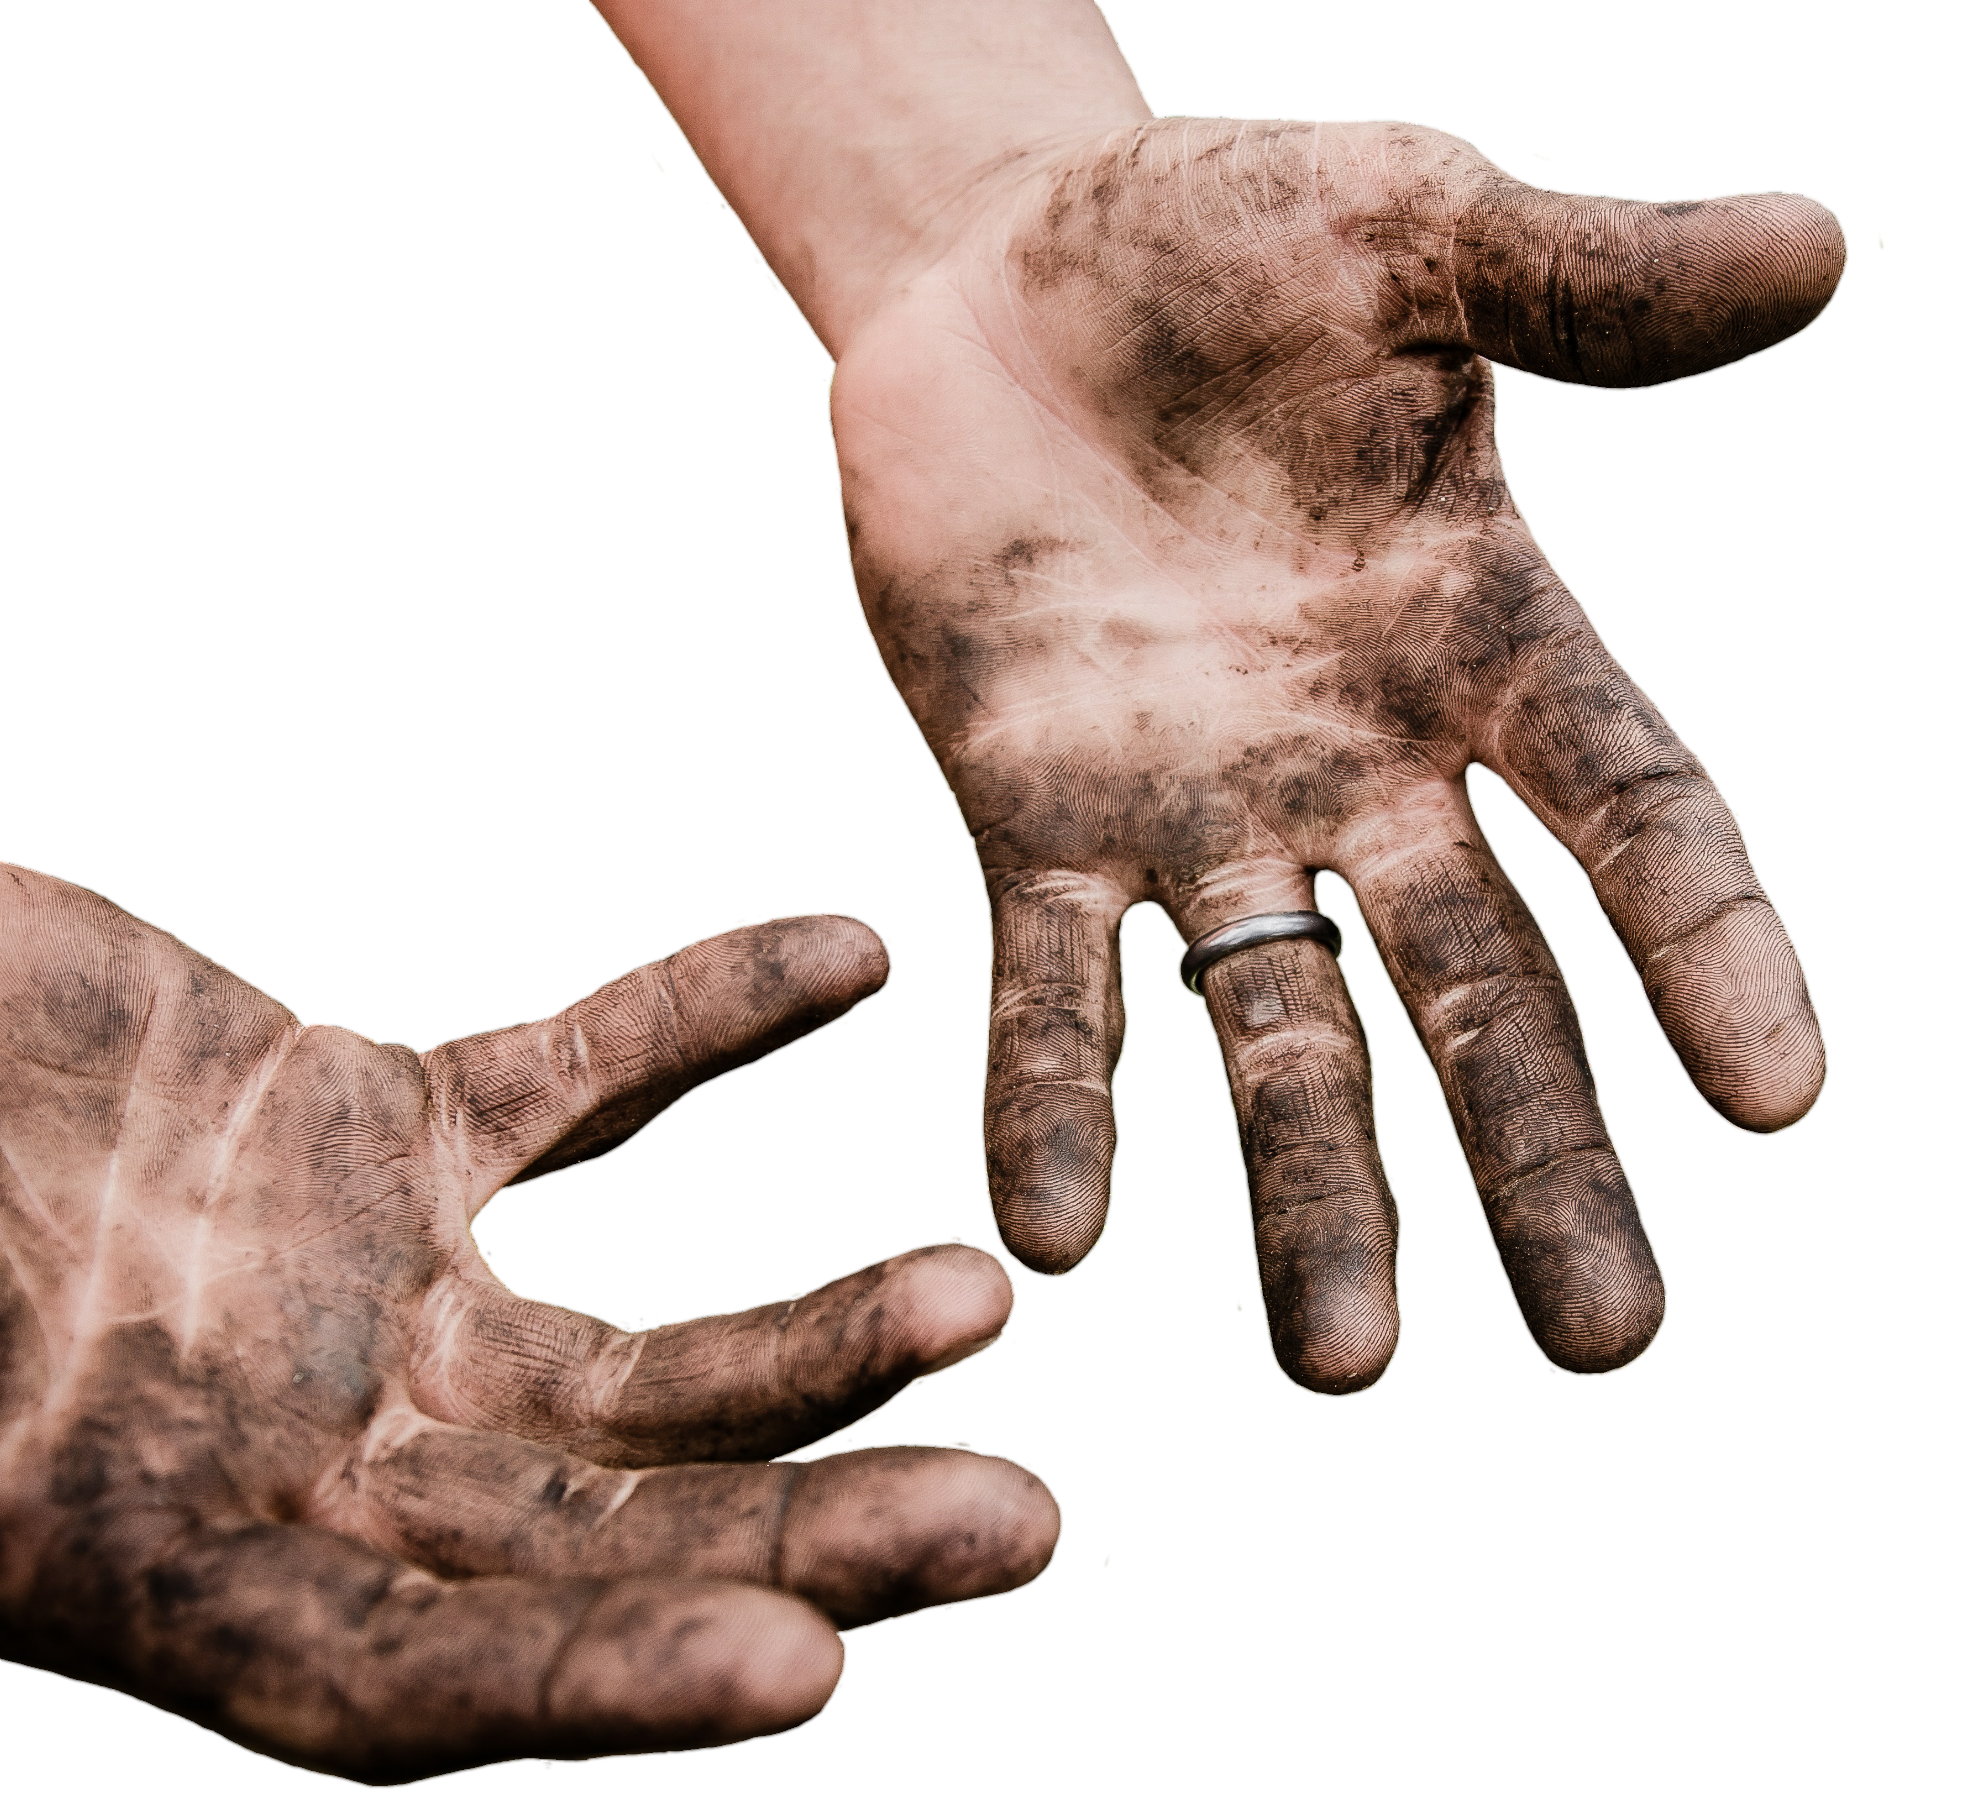 Dirty Hands PNG Image